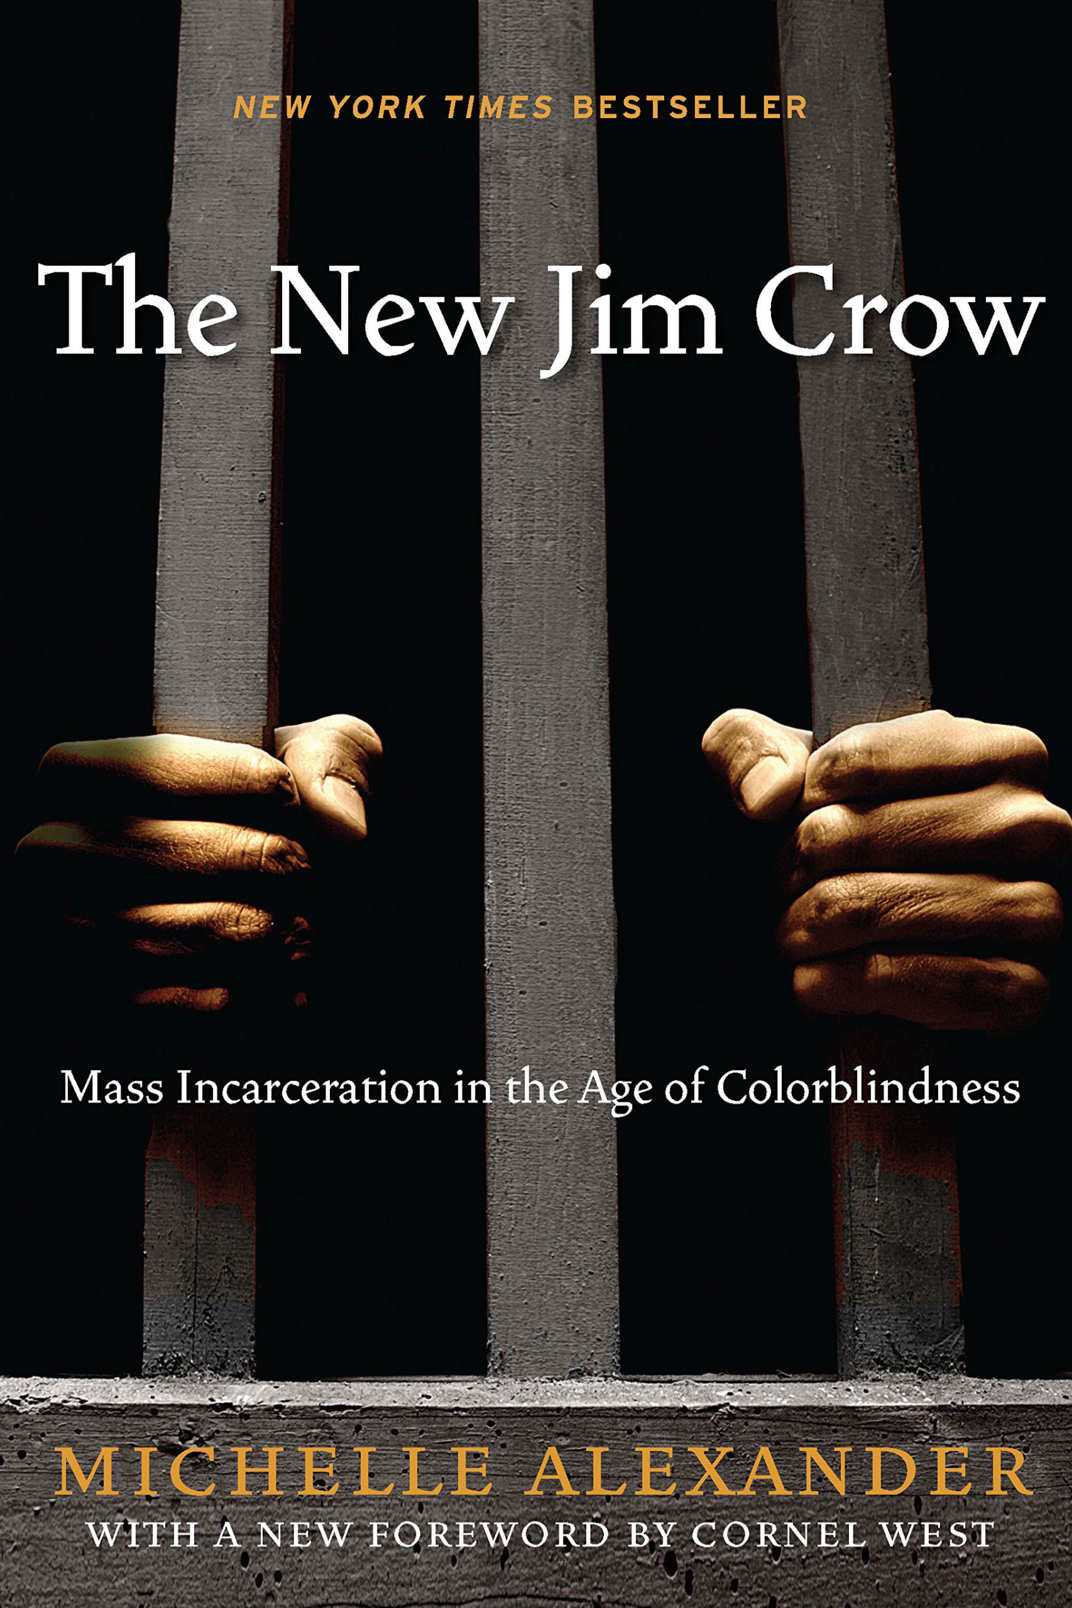 <em>The New Jim Crow: Mass Incarceration in the Age of Colorblindness</em> by Michelle Alexander